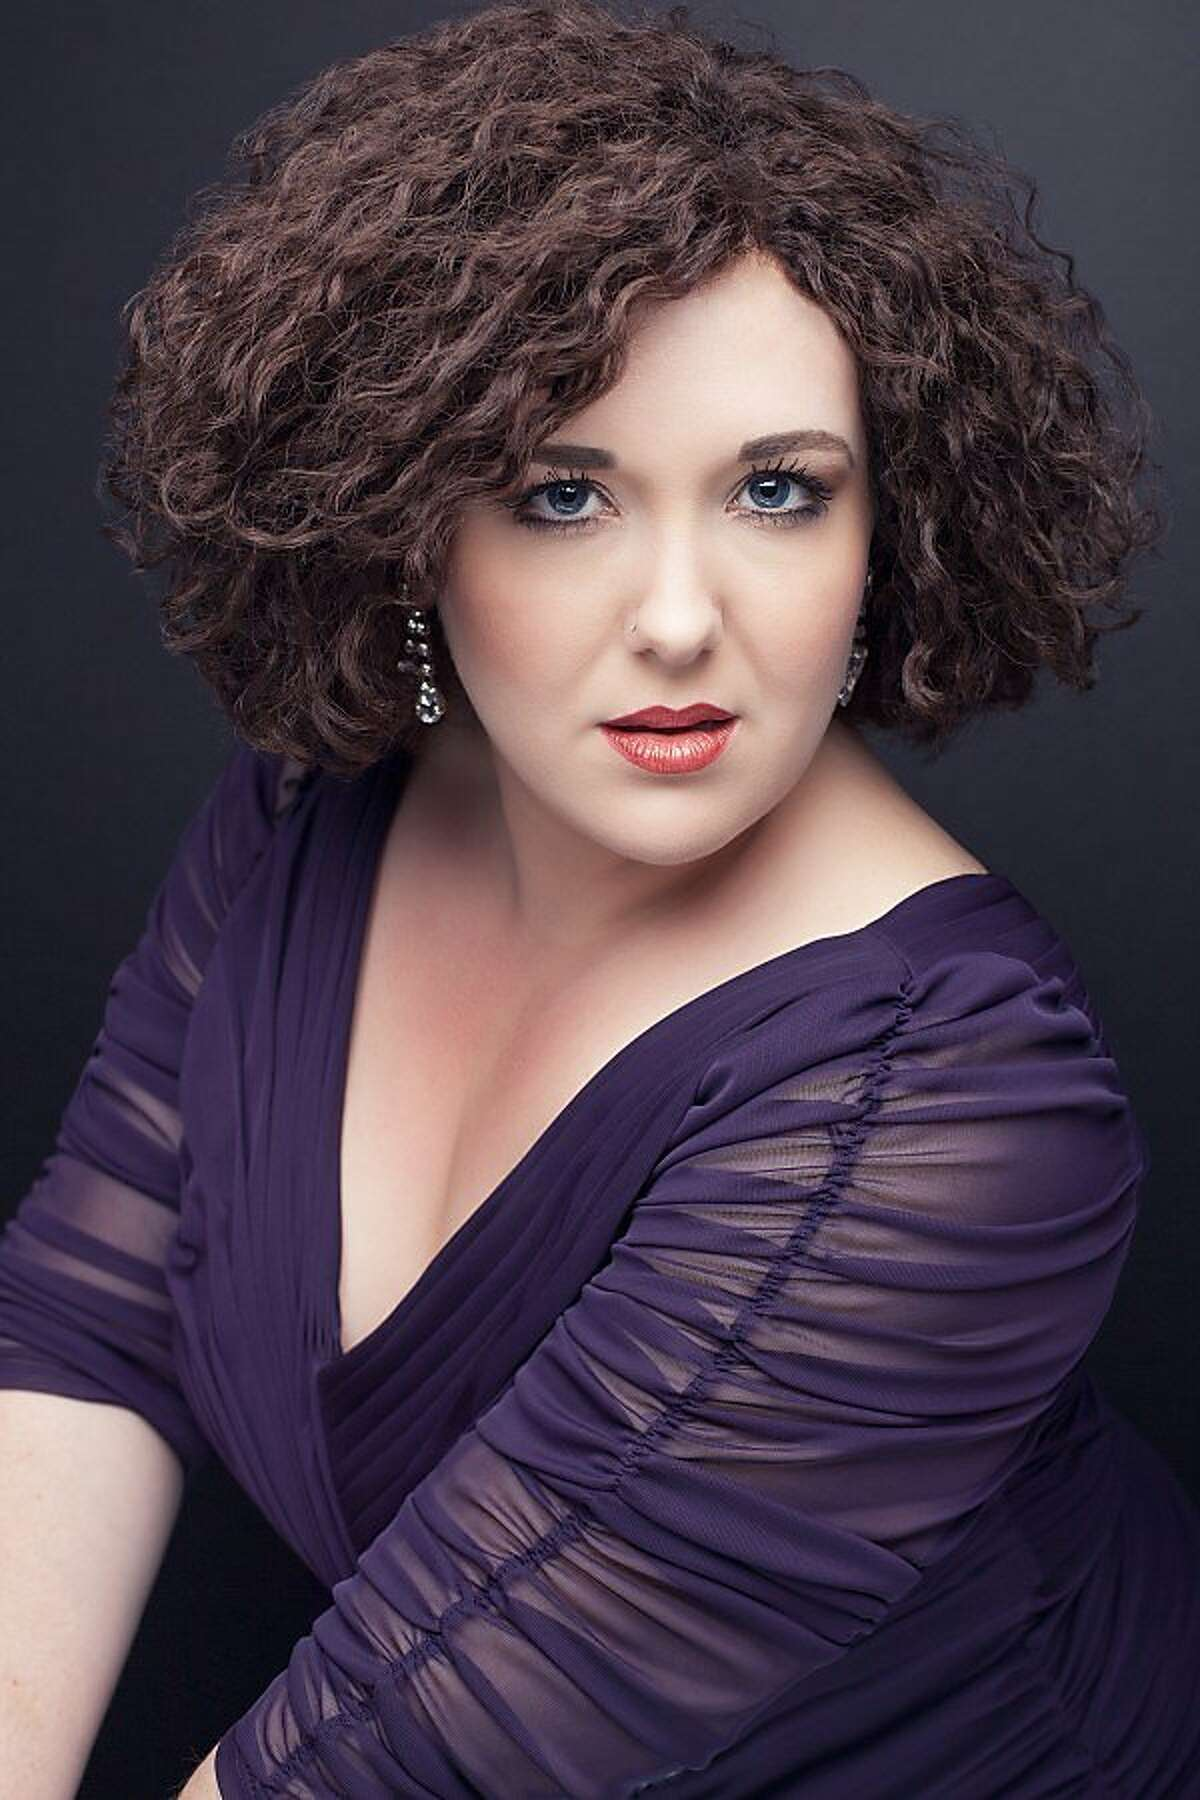 Soprano Toni Marie Palmertree, a San Francisco Opera Adler Fellow, performs with musicians of the Opera Orchestra at the San Francisco Conservatory of Music Nov. 26 to raise money for victims of the Wine Country fires and Hurricane Harvey.